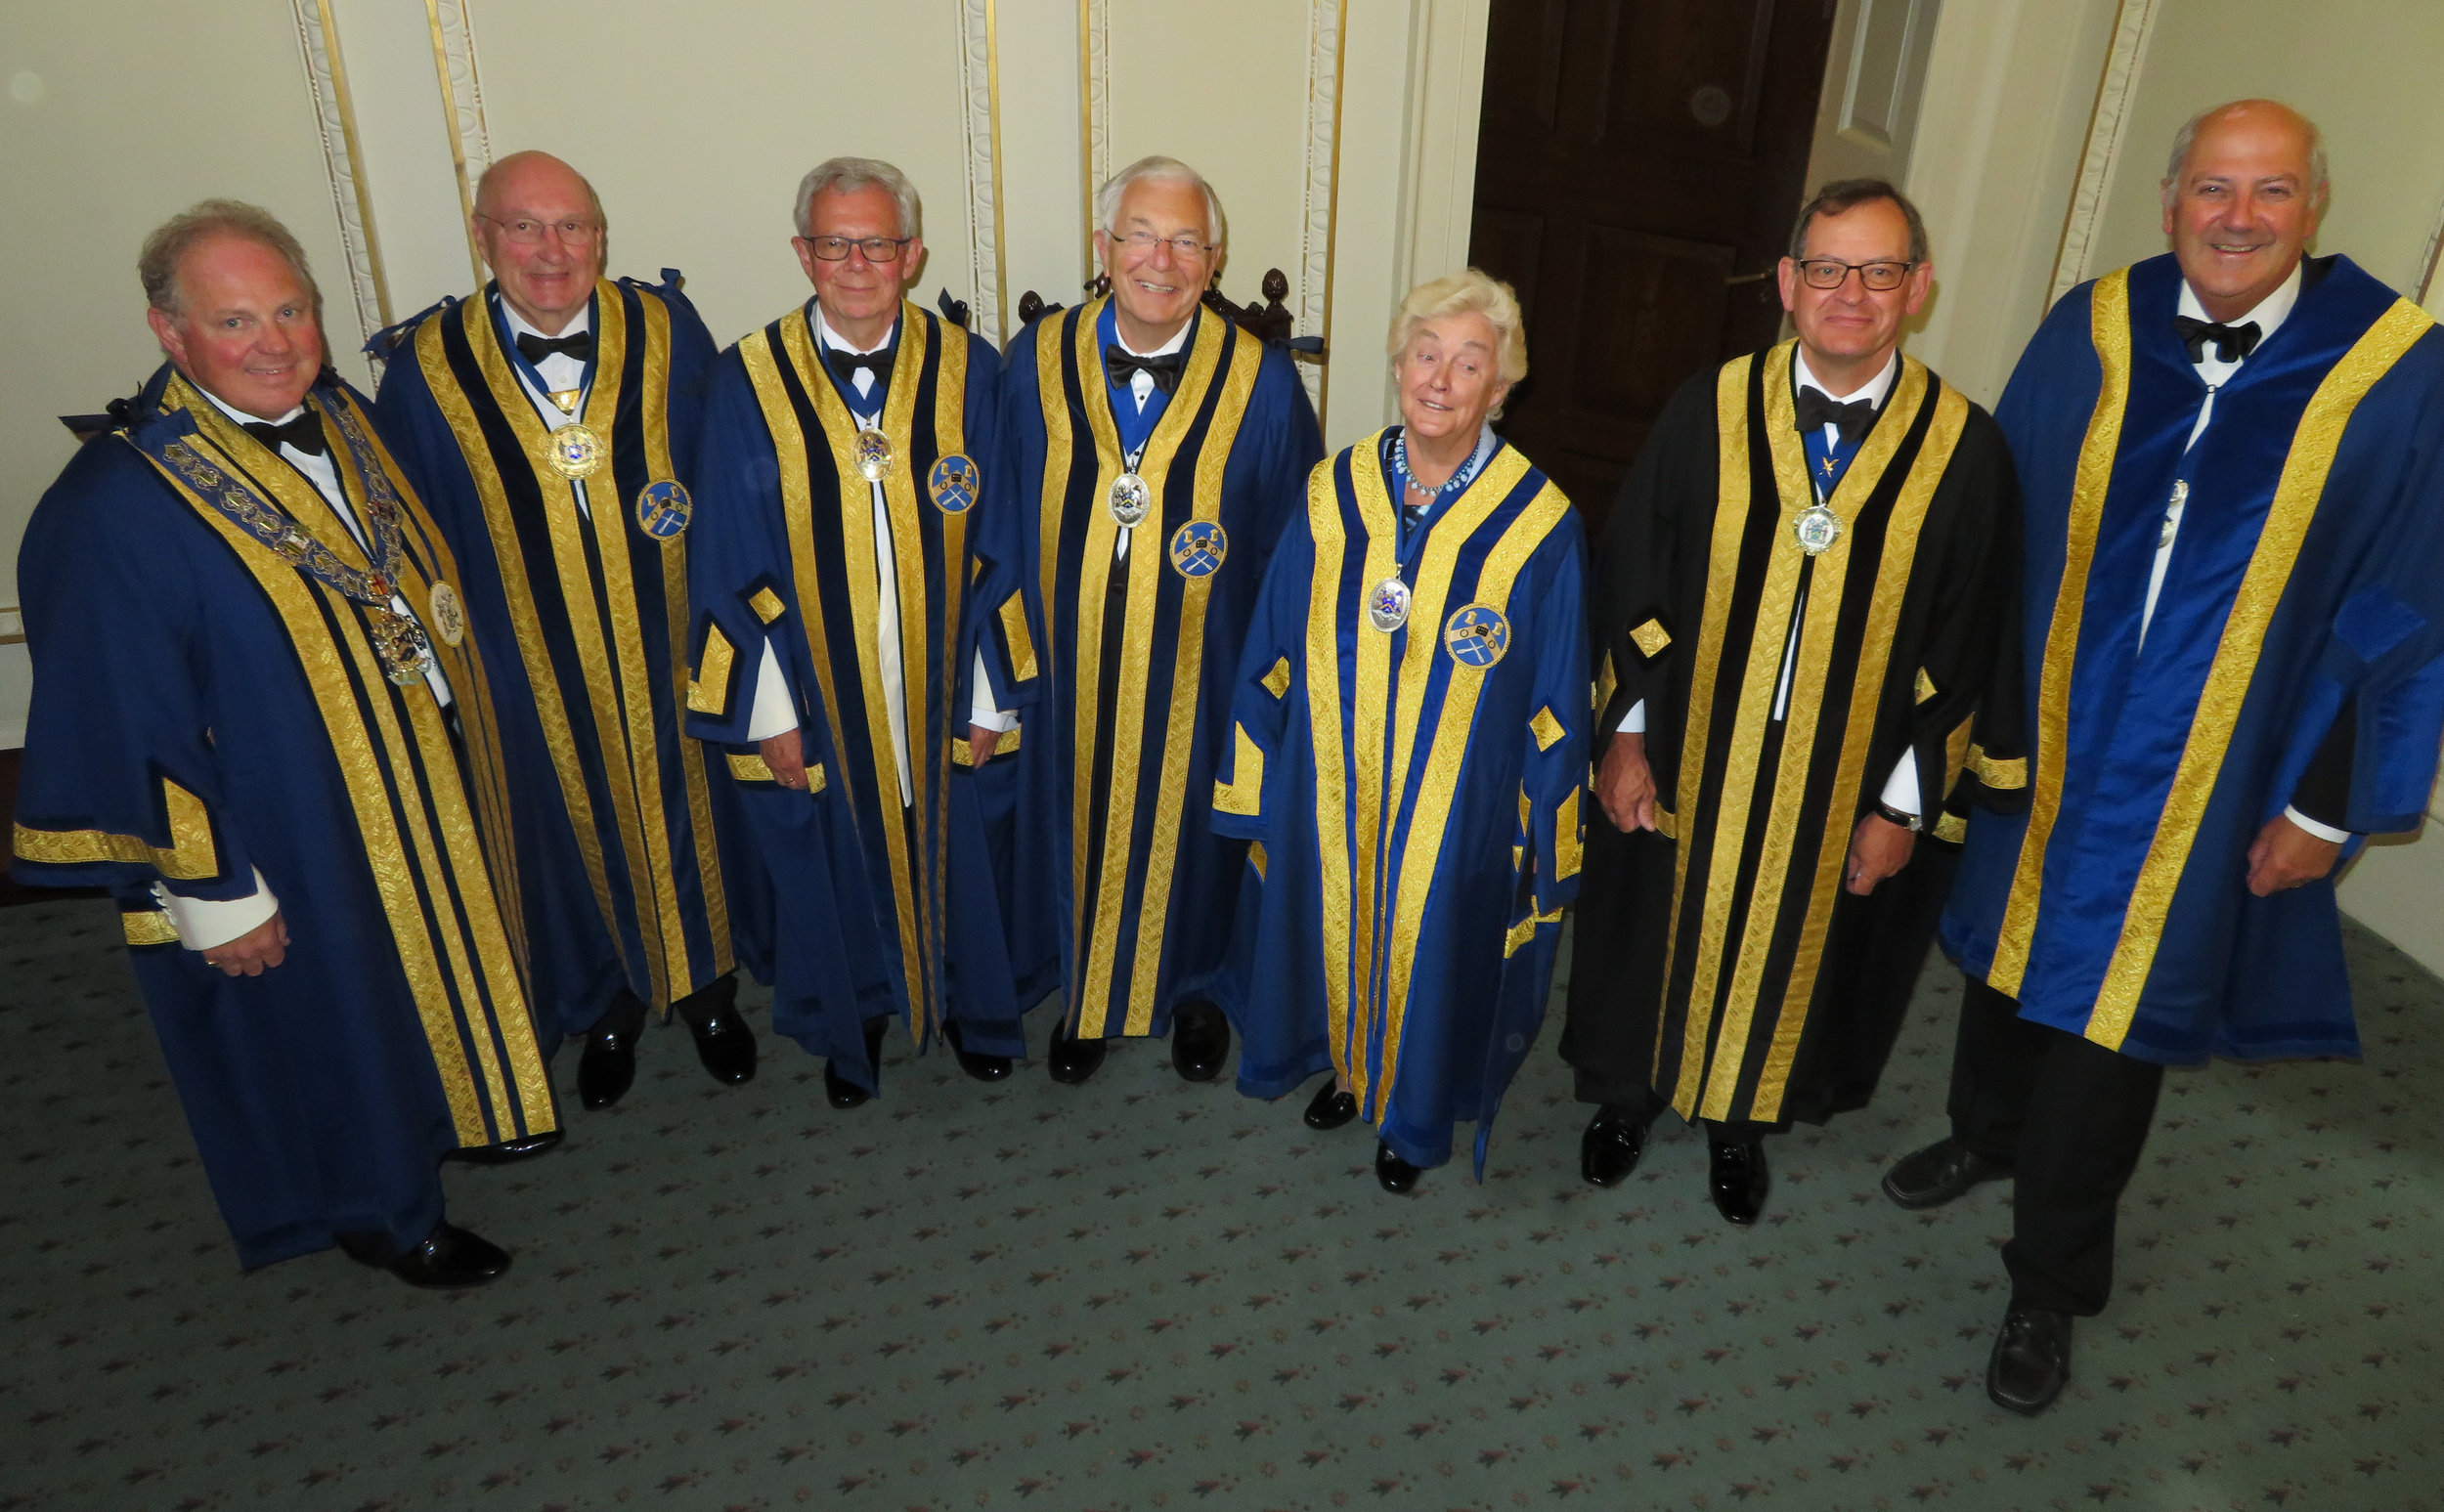 The Master, First, Second, Third & Fourth Wardens, Clerk & Assistant Clerk